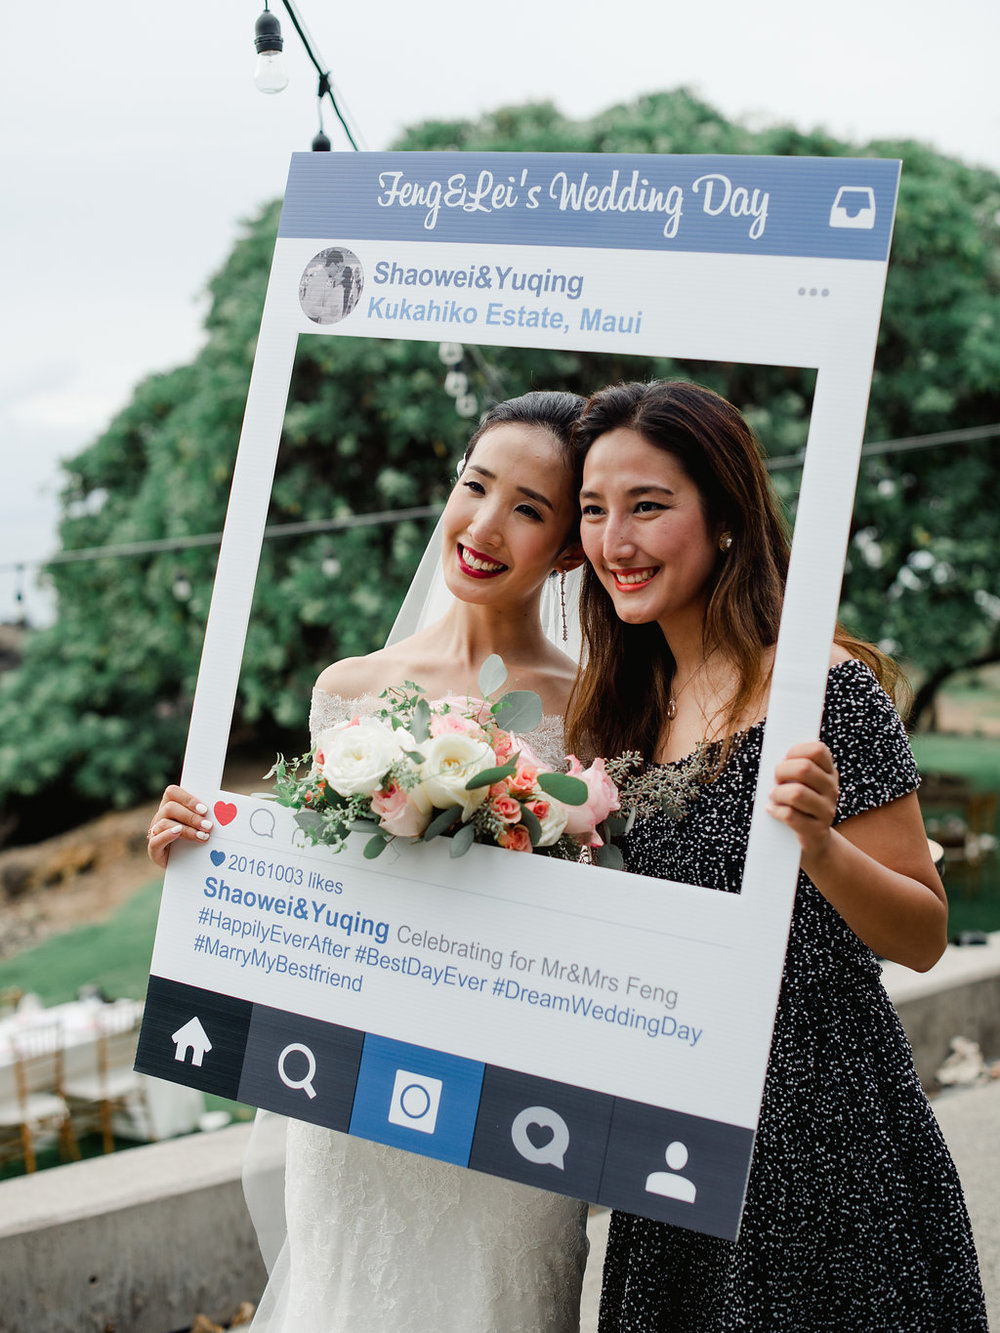 Bliss Wedding Design & Spectacular Events - instagram photo booth prop